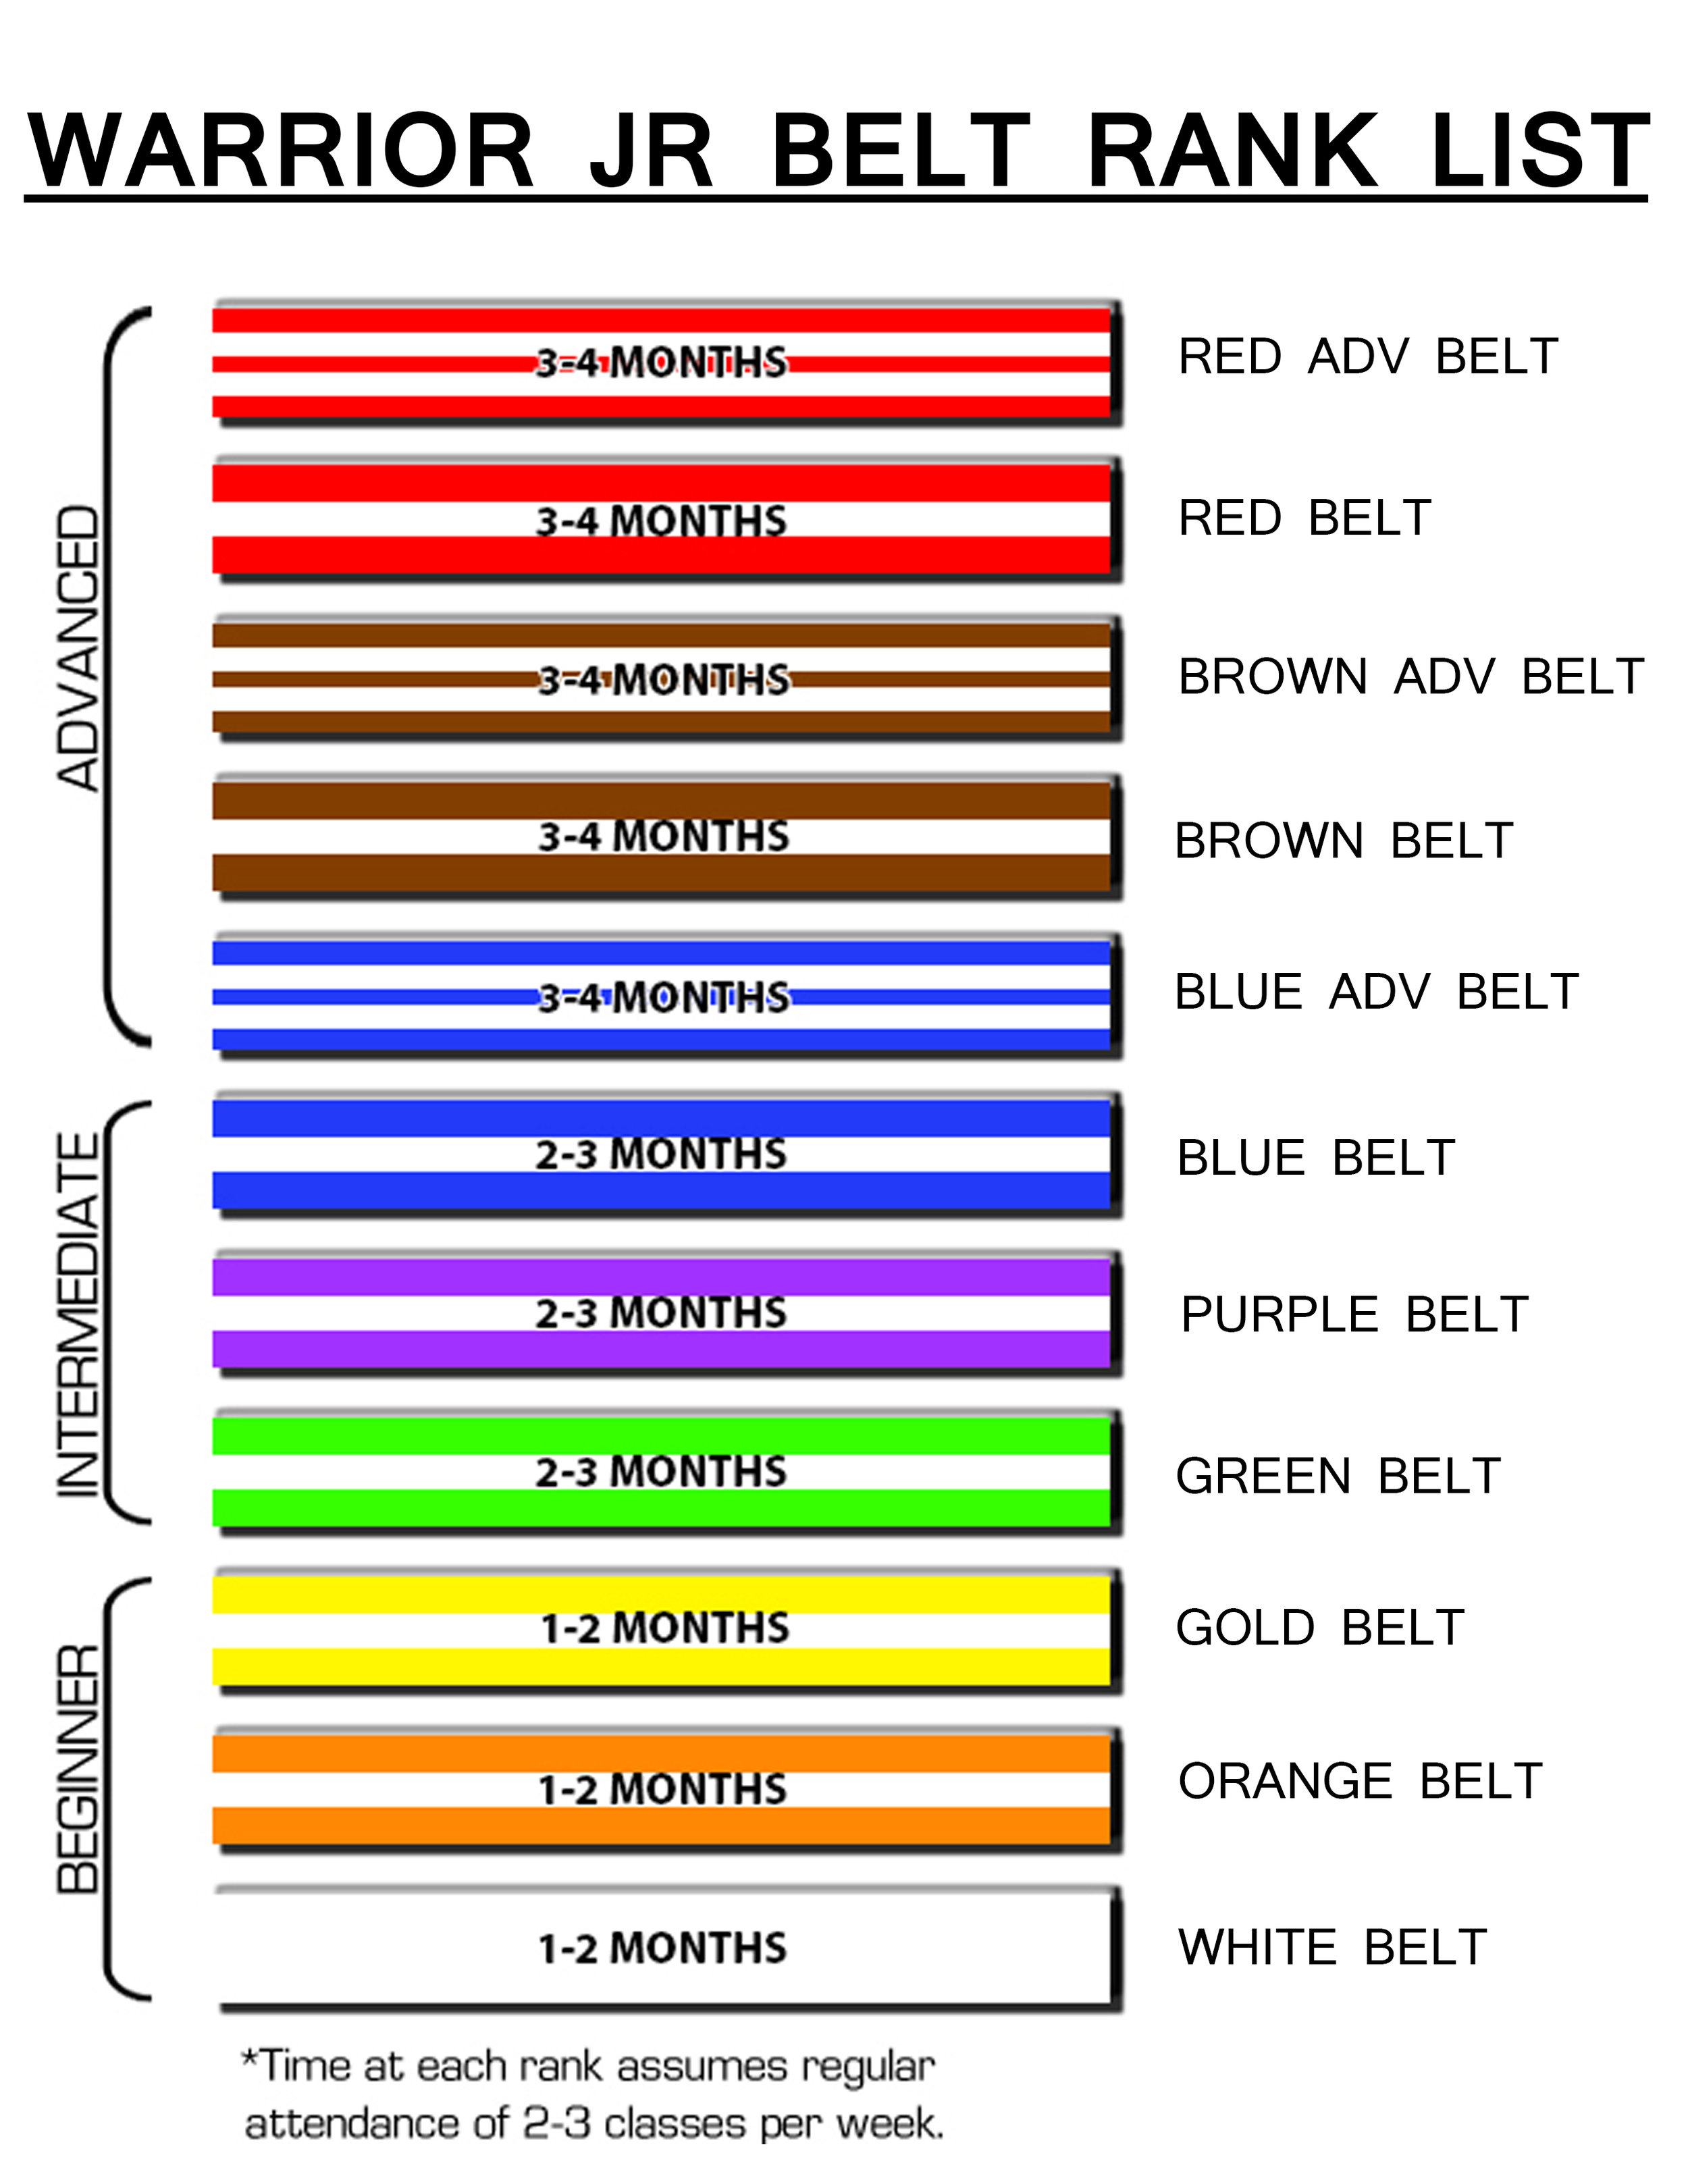 WJ BELT RANK LIST.jpg